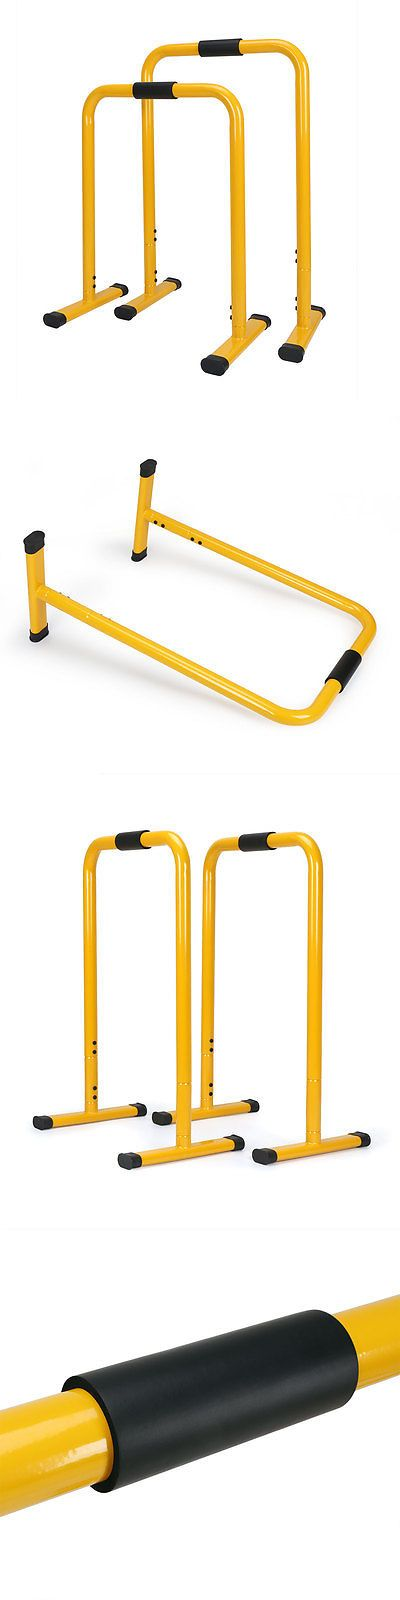 Push Up Stands 158925: Dip Station Bars Body Press Dip Stand -> BUY IT NOW ONLY: $76.99 on eBay!